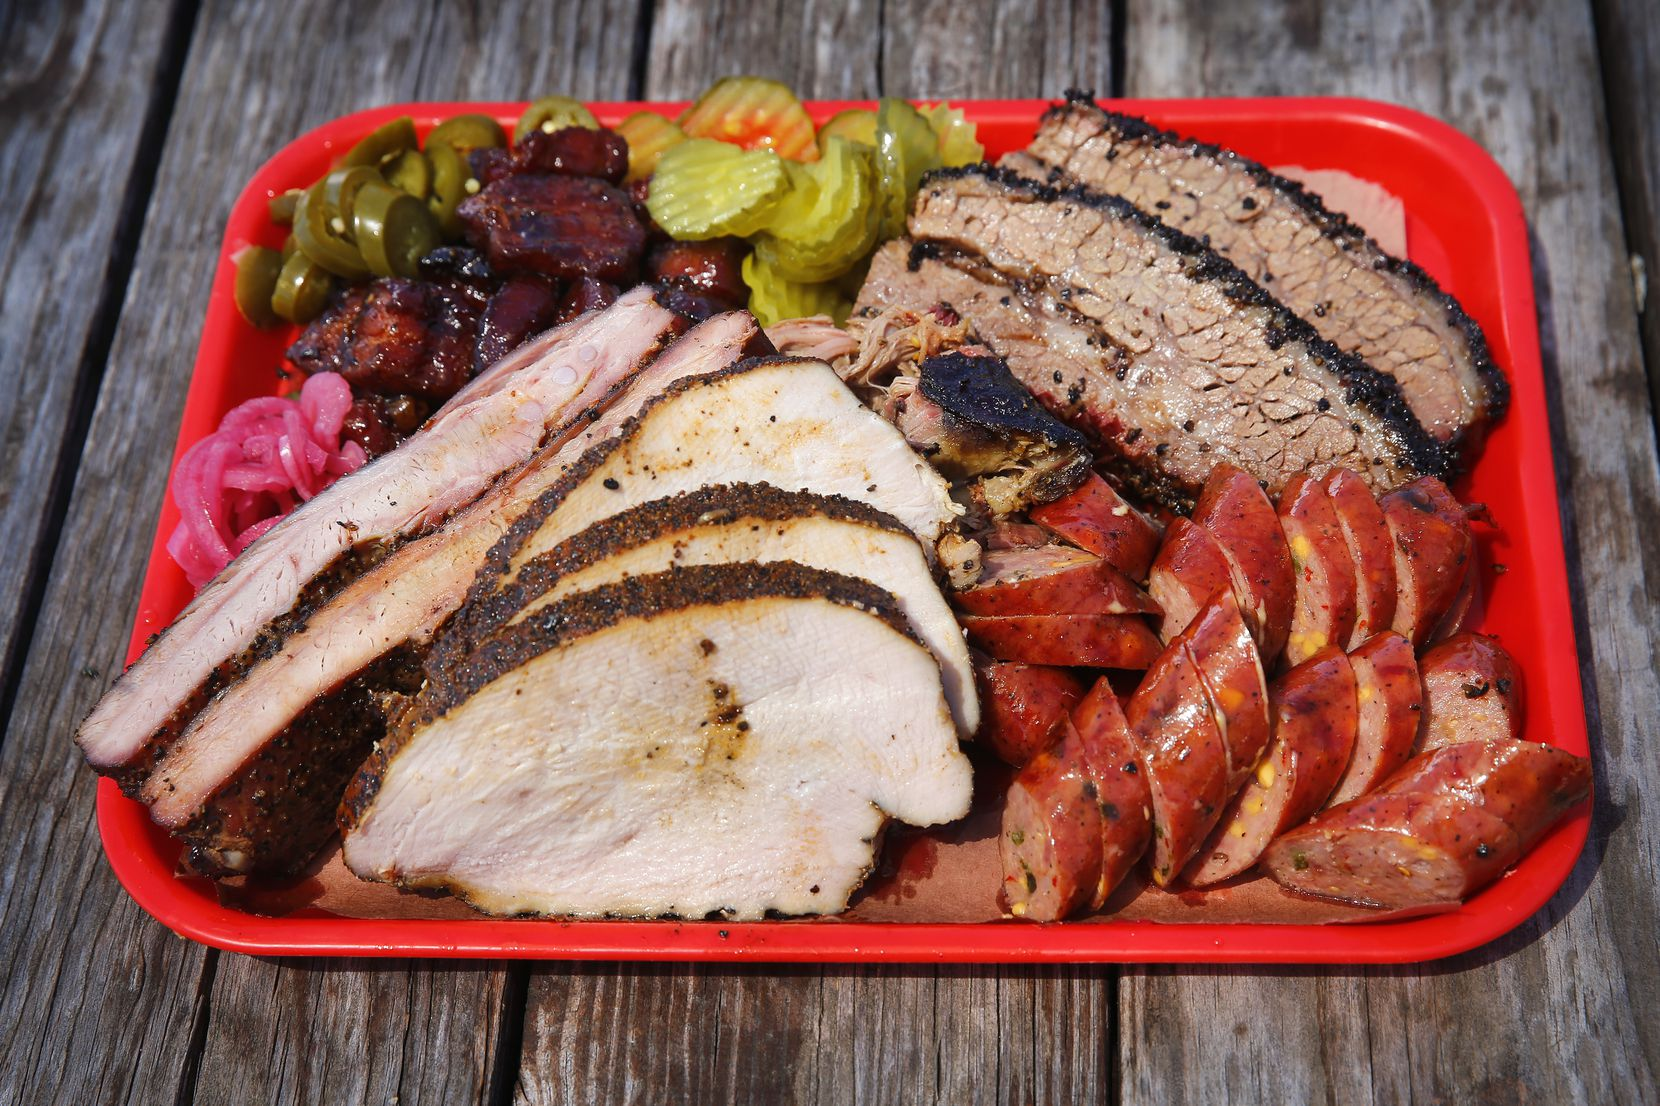 Panther City BBQ serves Hell's Half Acre, a tray full of brisket, pulled pork, sausage, pork ribs, smoked turkey and pork belly.